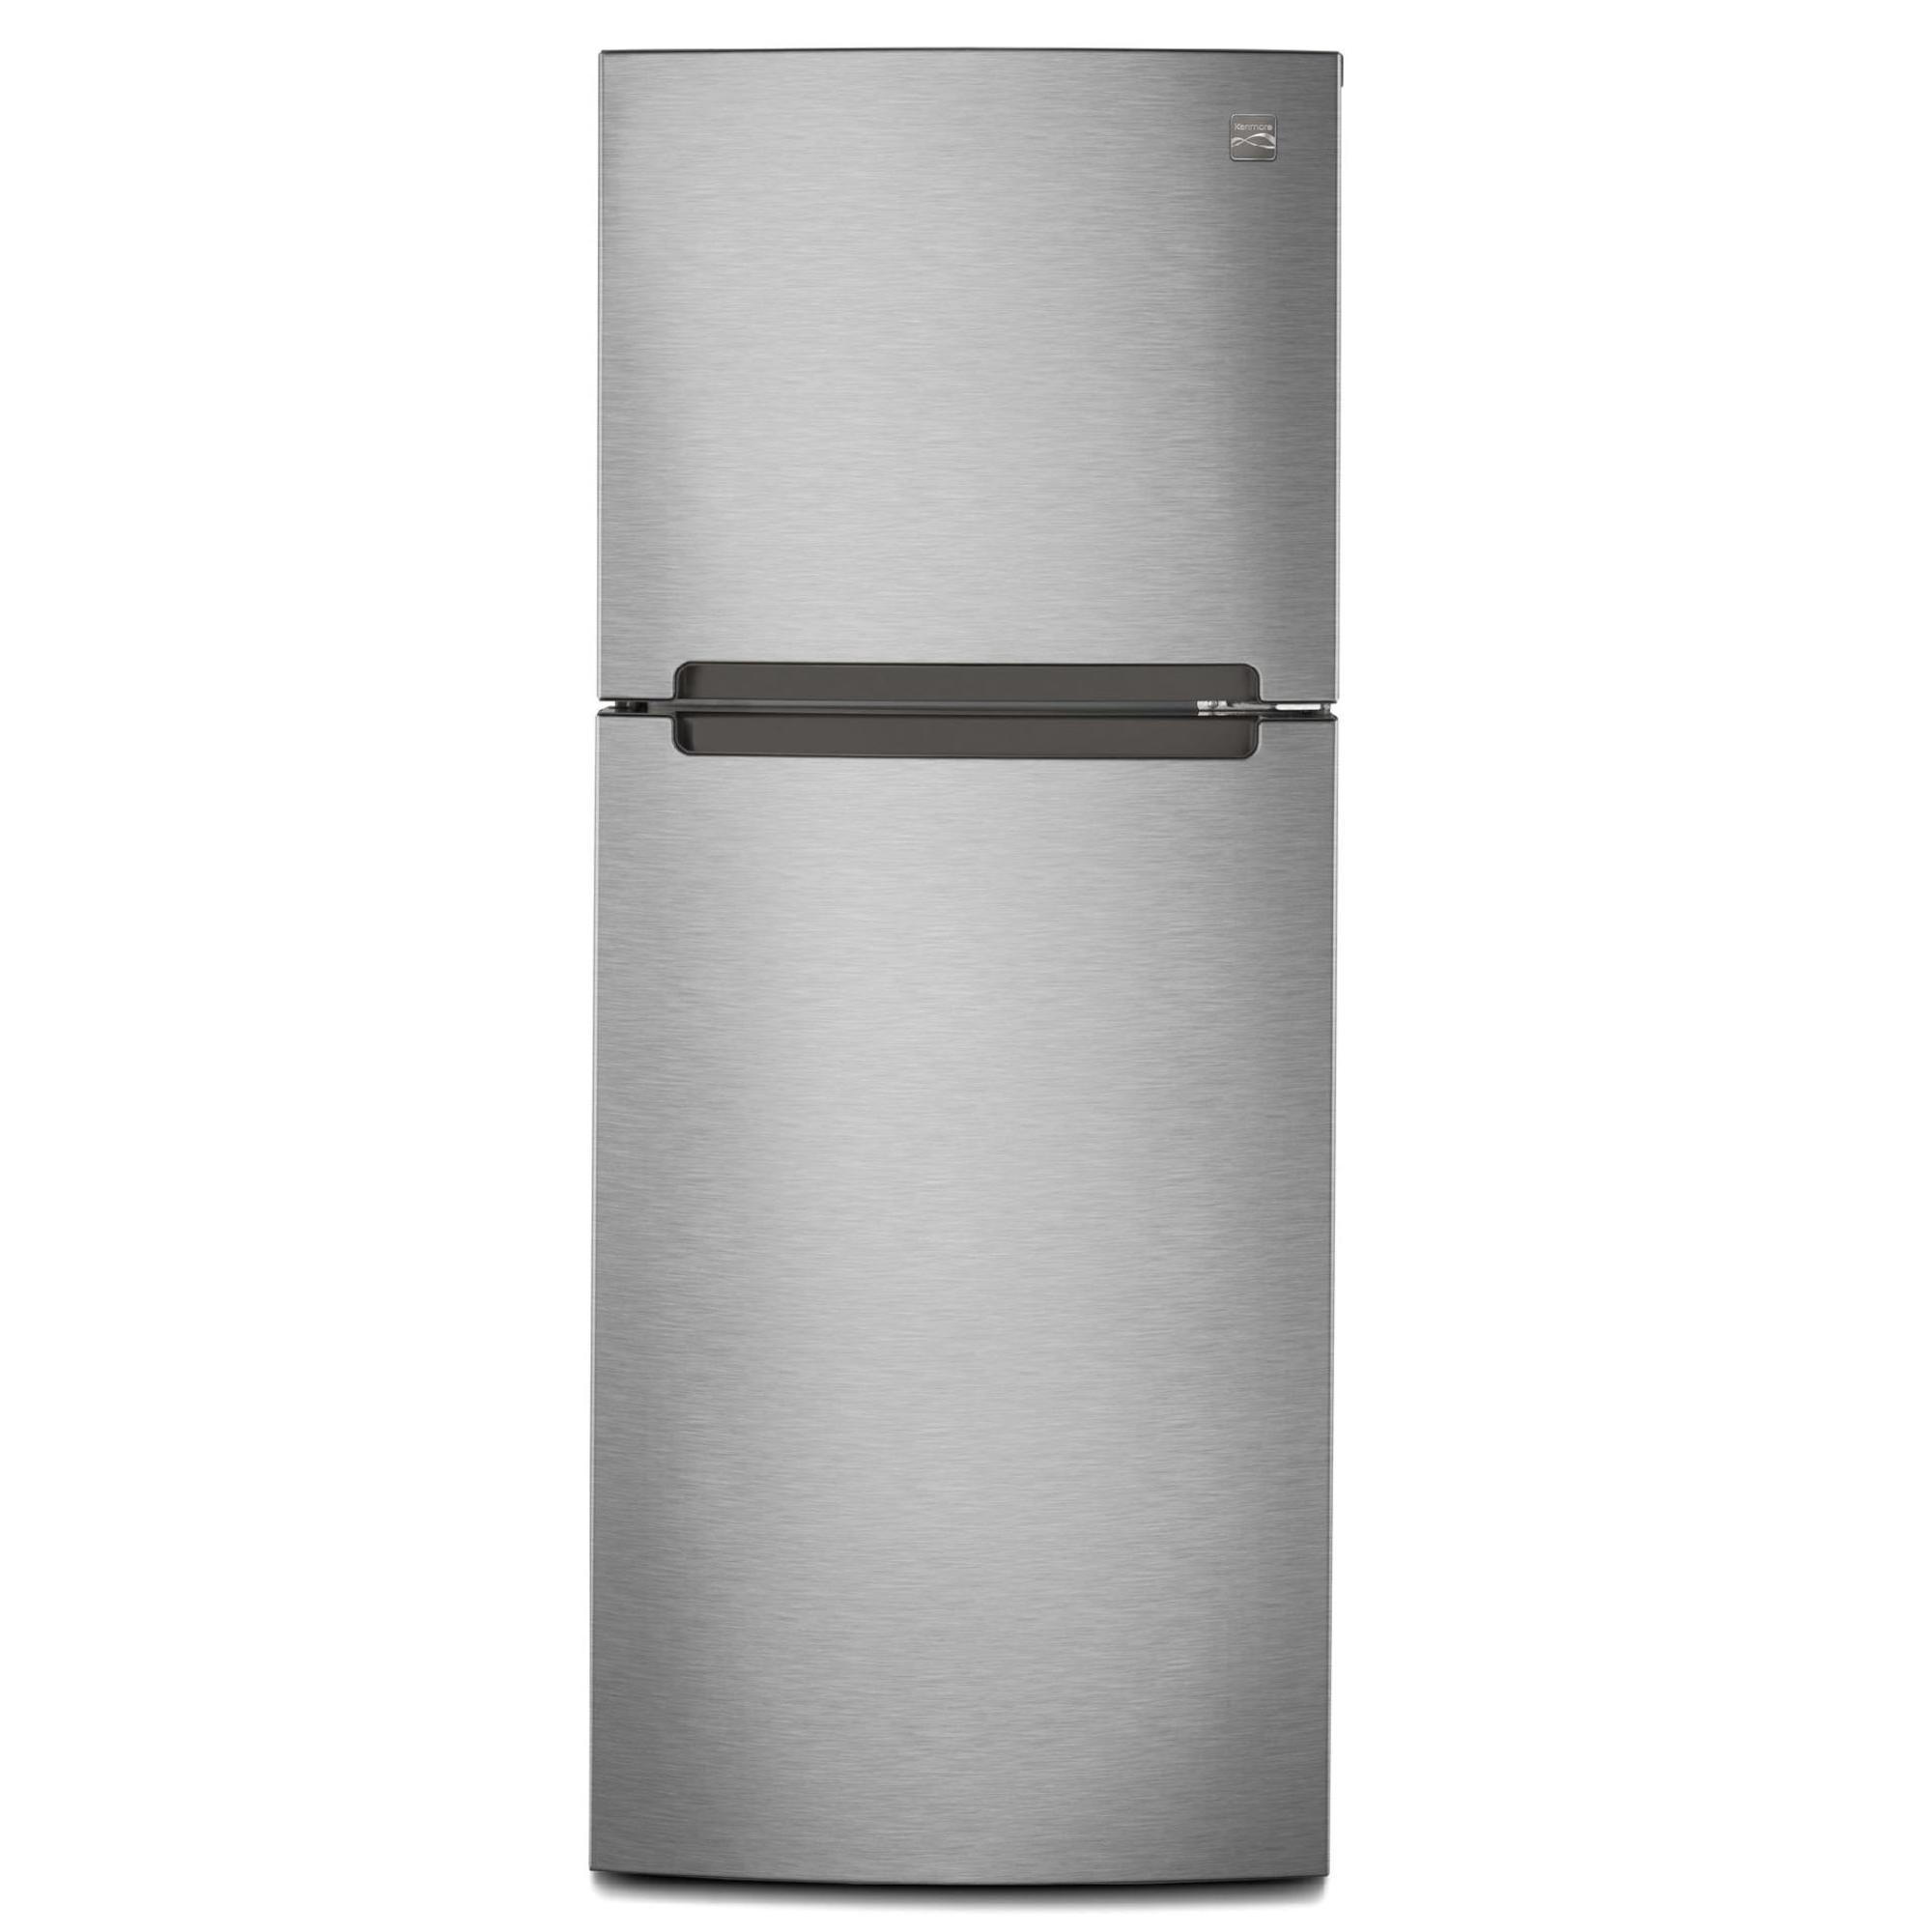 Kenmore 10 7 cu ft Refrigerator with Gallon Door Bins